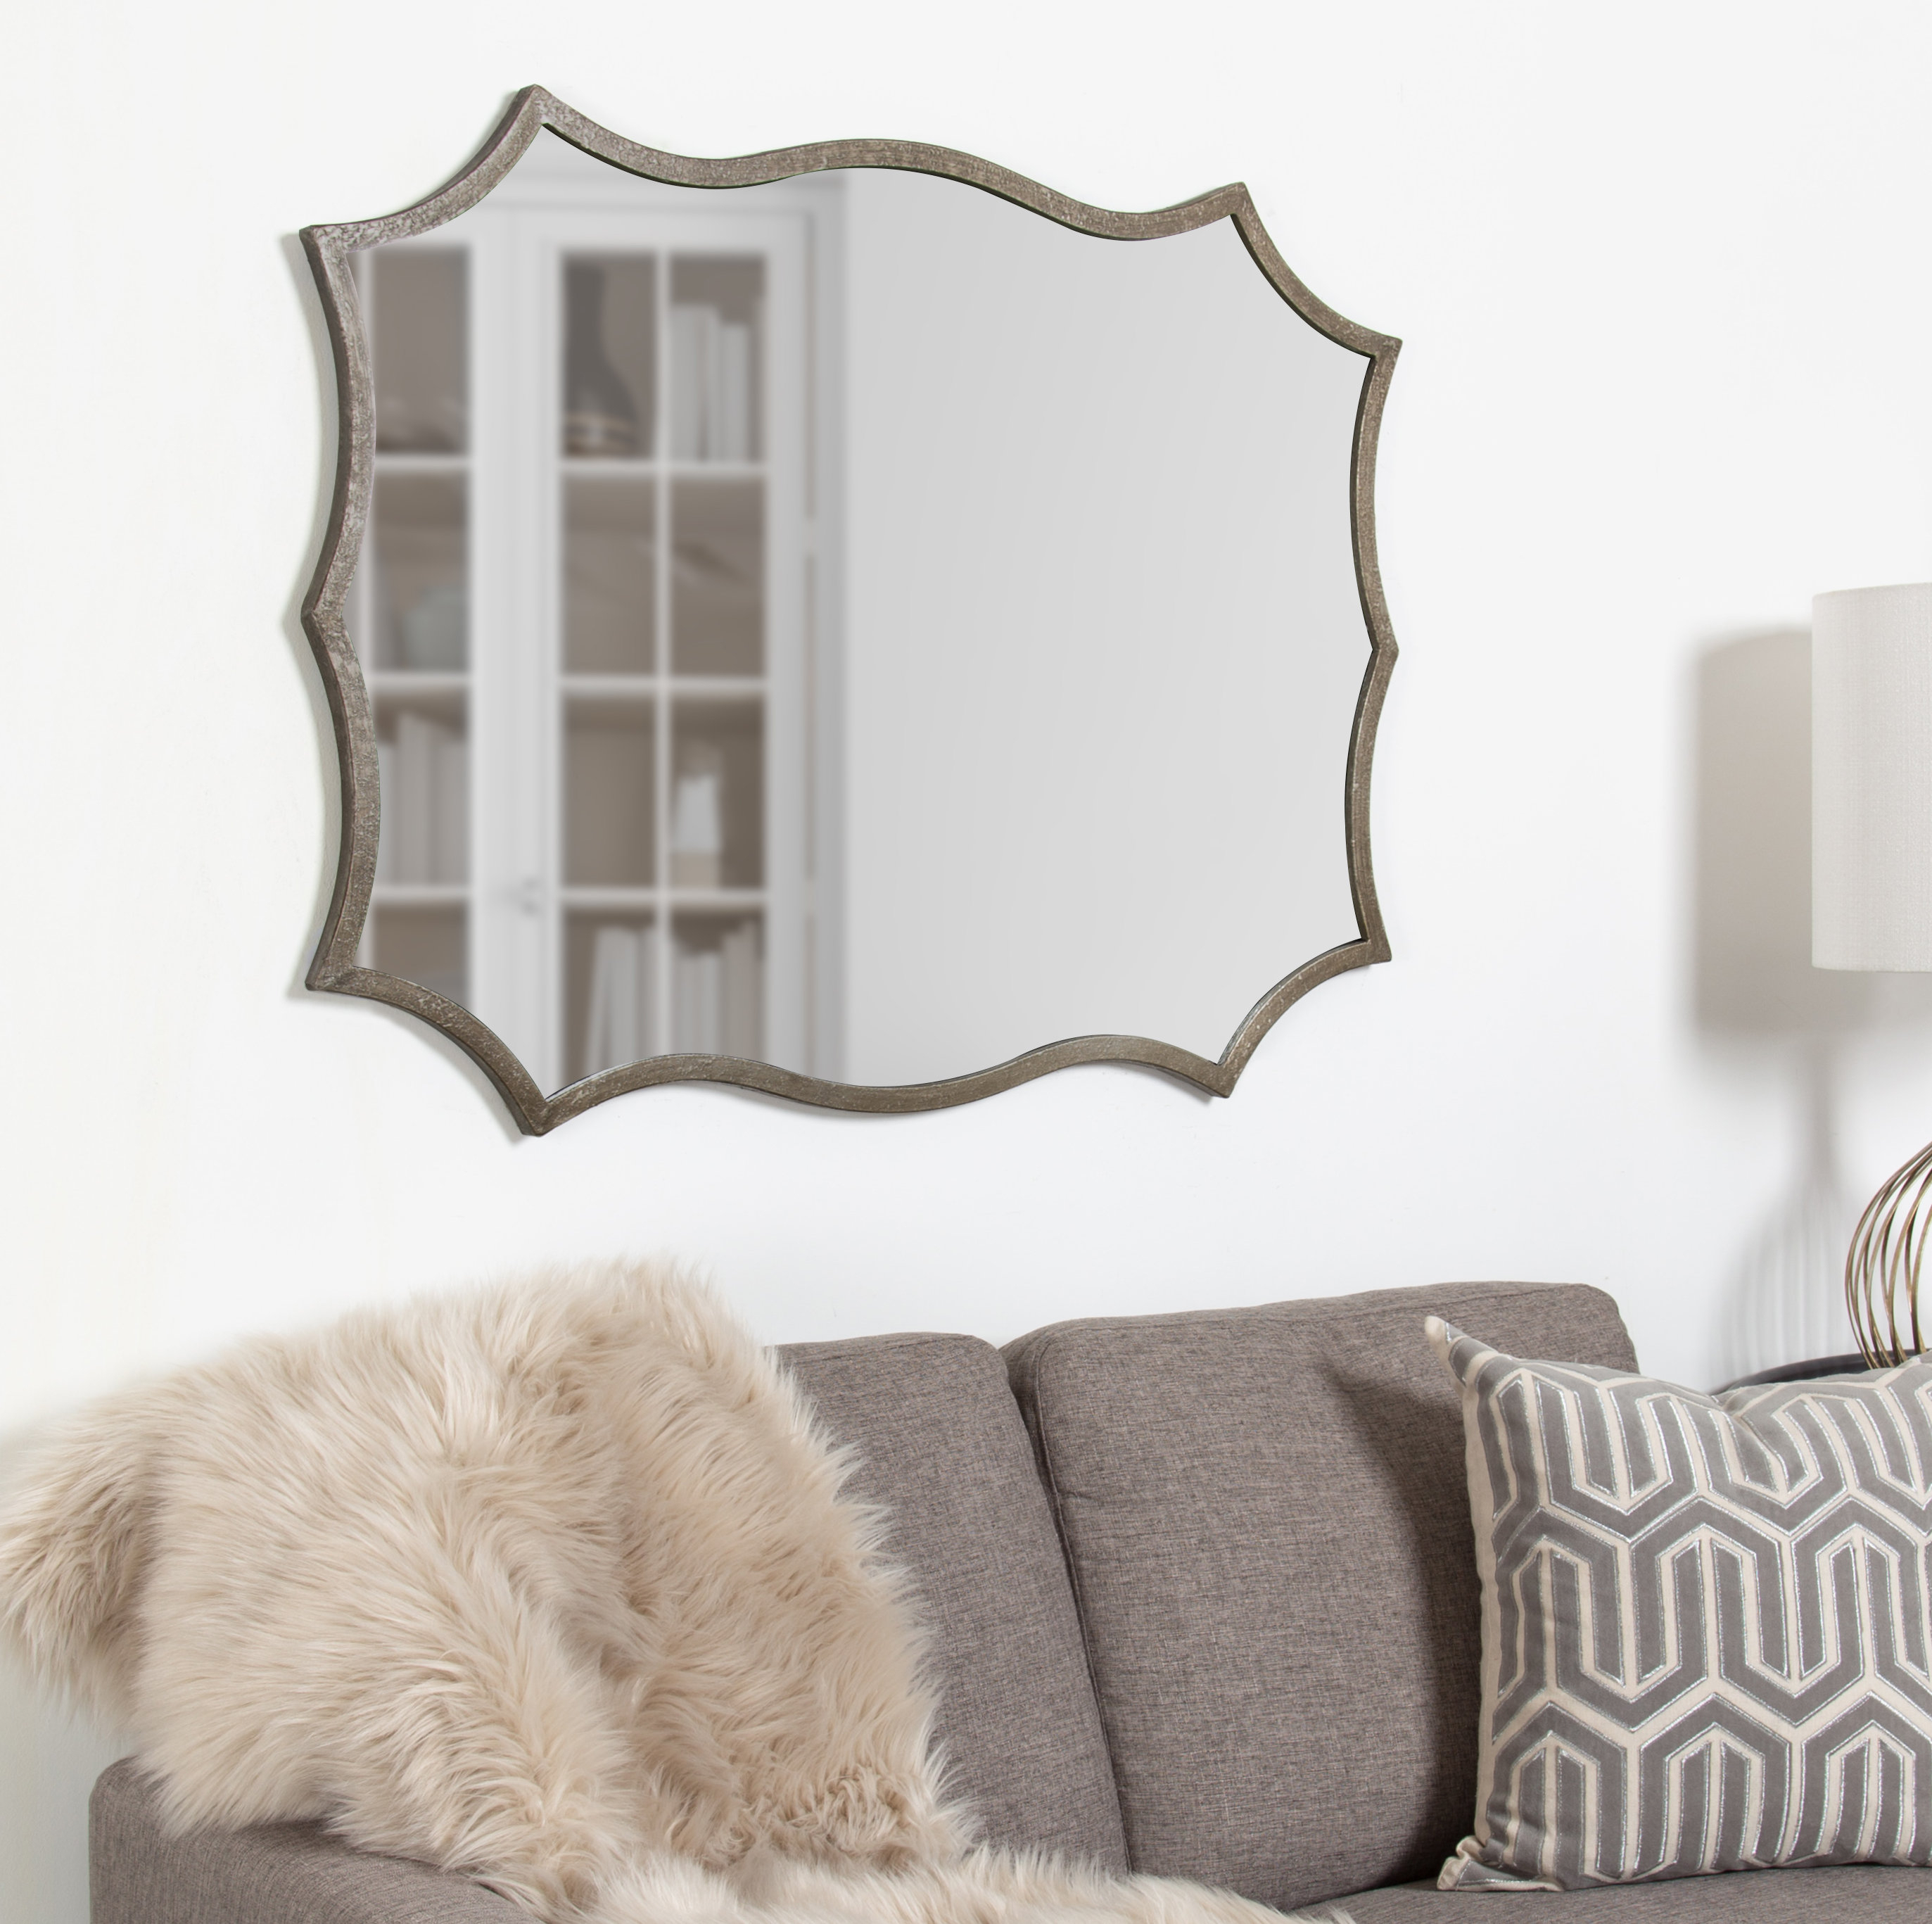 Delvale Scallop Accent Wall Mirror Within Guidinha Modern & Contemporary Accent Mirrors (View 6 of 30)